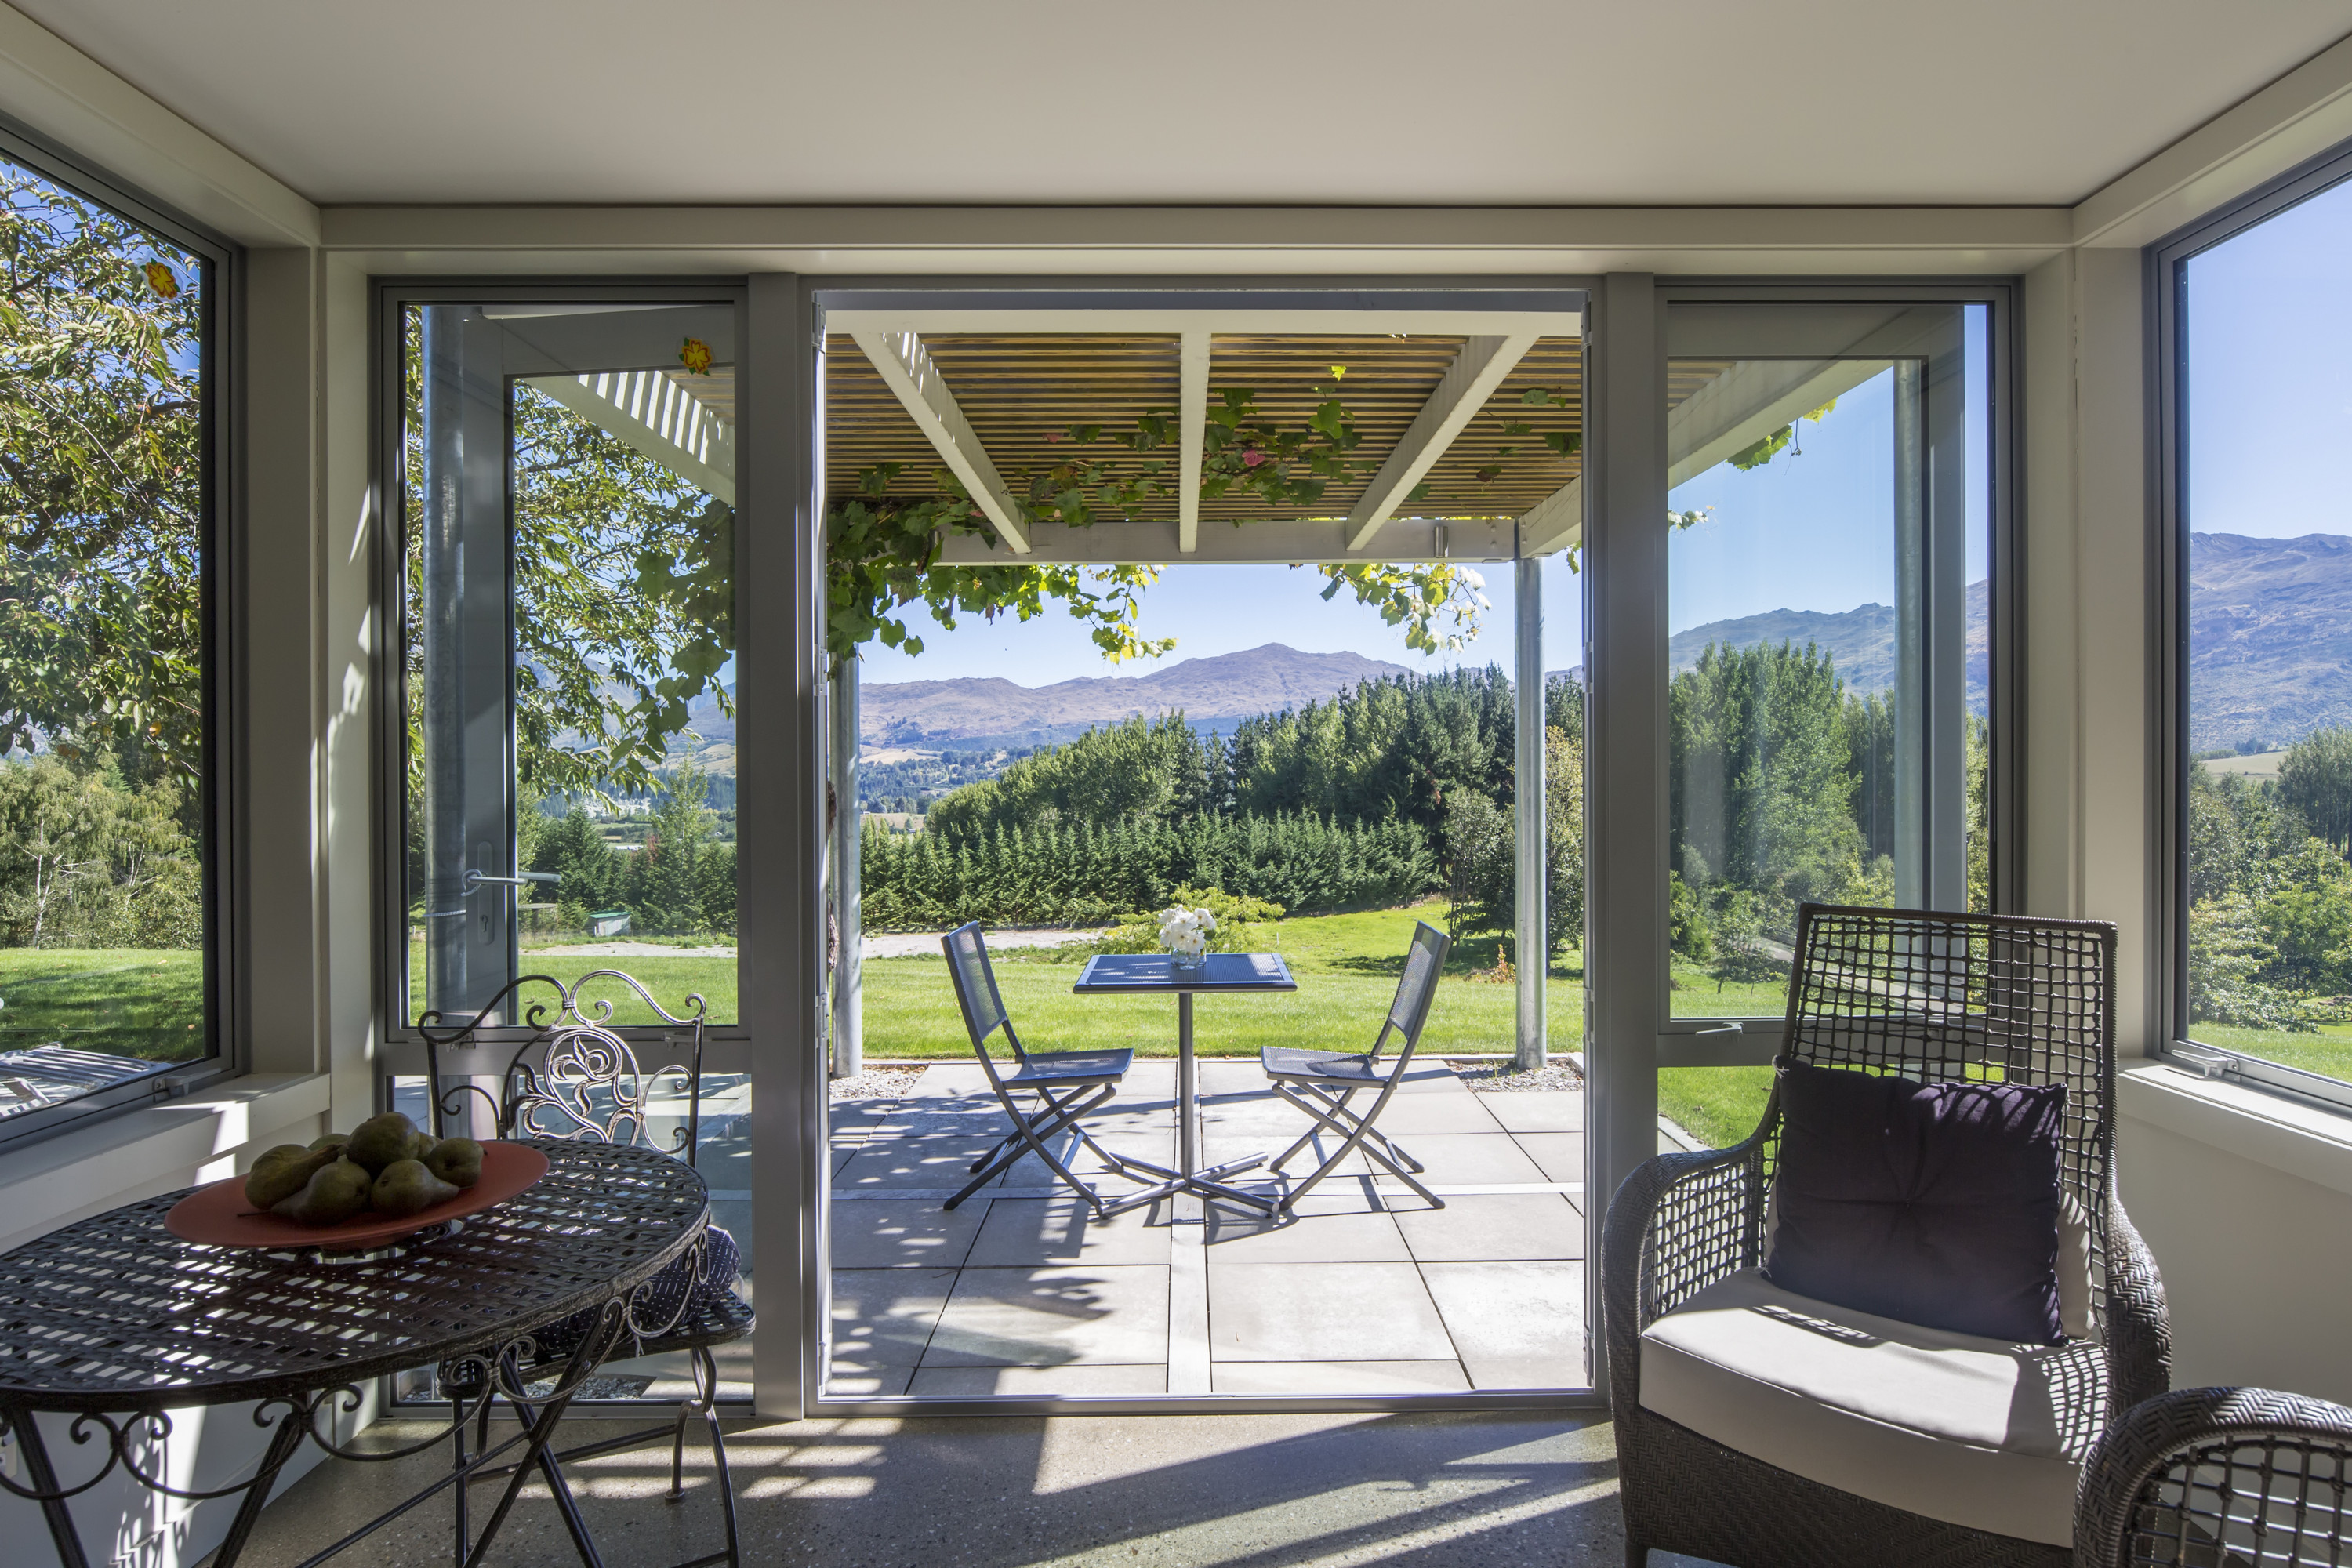 Single Family Home for Sale at 128 Slopehill Road 128 Slopehill Road Dalefield Queenstown, Otago, 9348 New Zealand